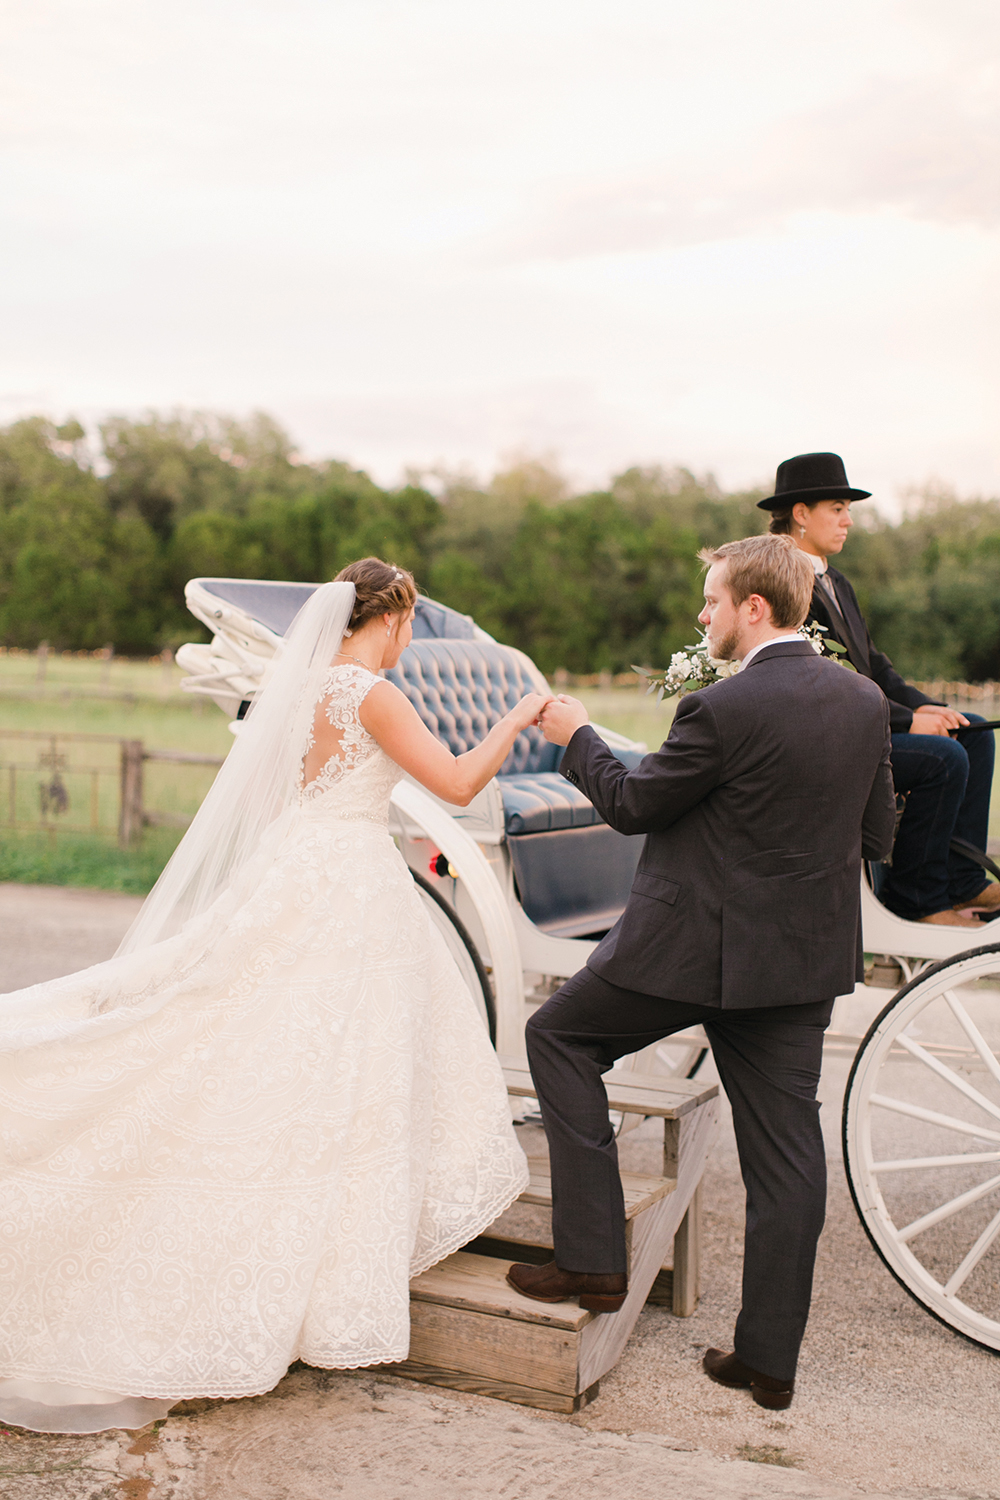 leaving the ceremony - horsedrawn carriage